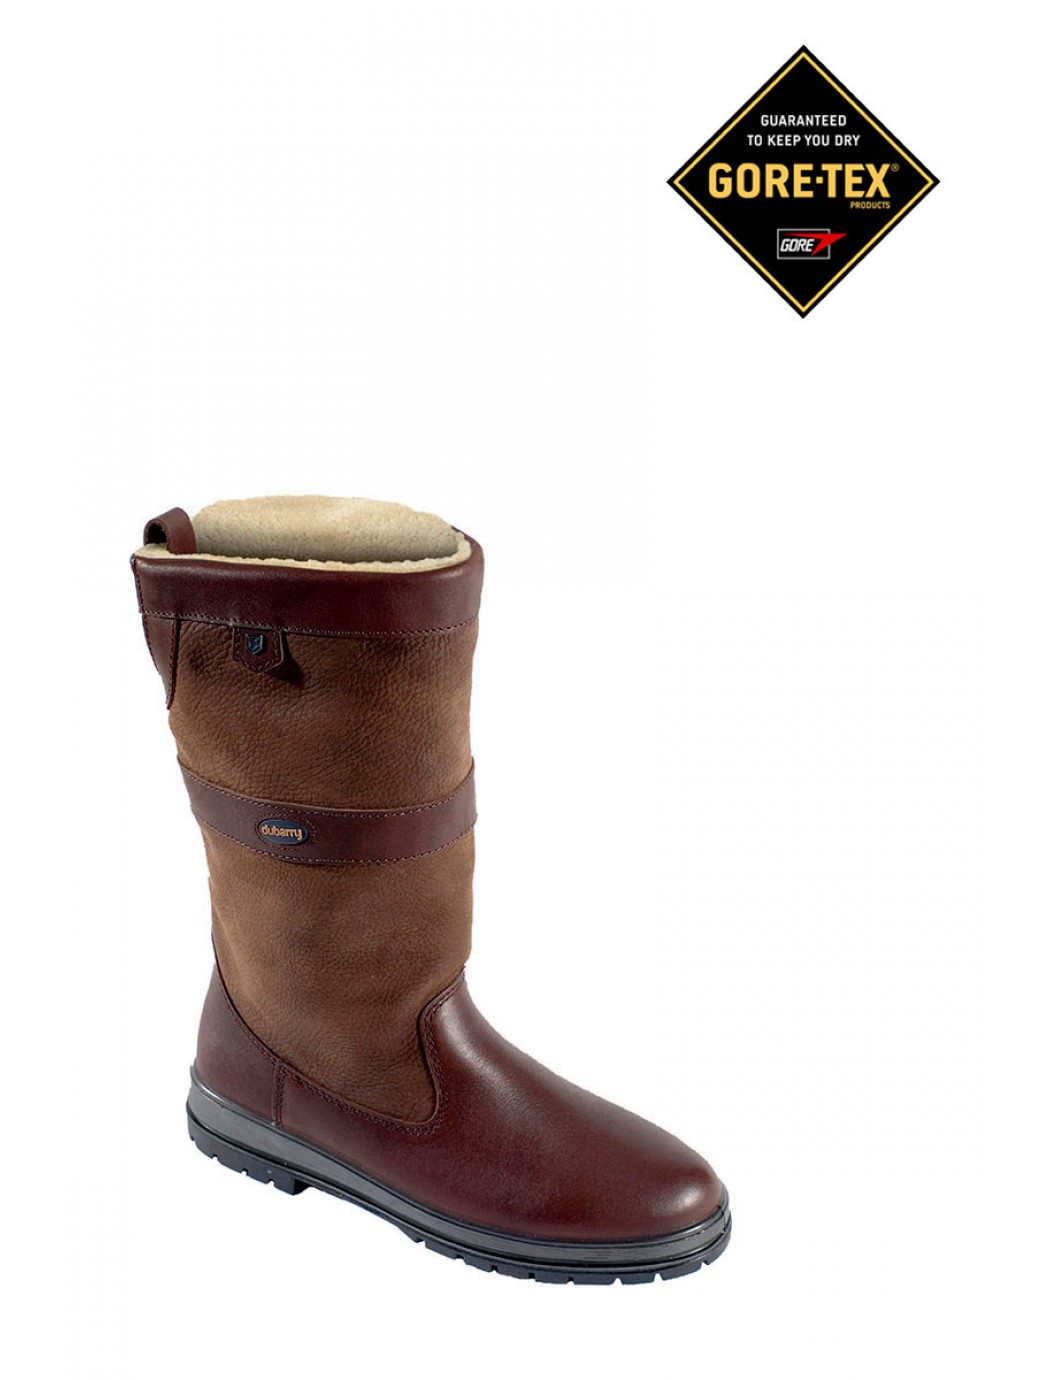 donegal-country-boots-walnut 1